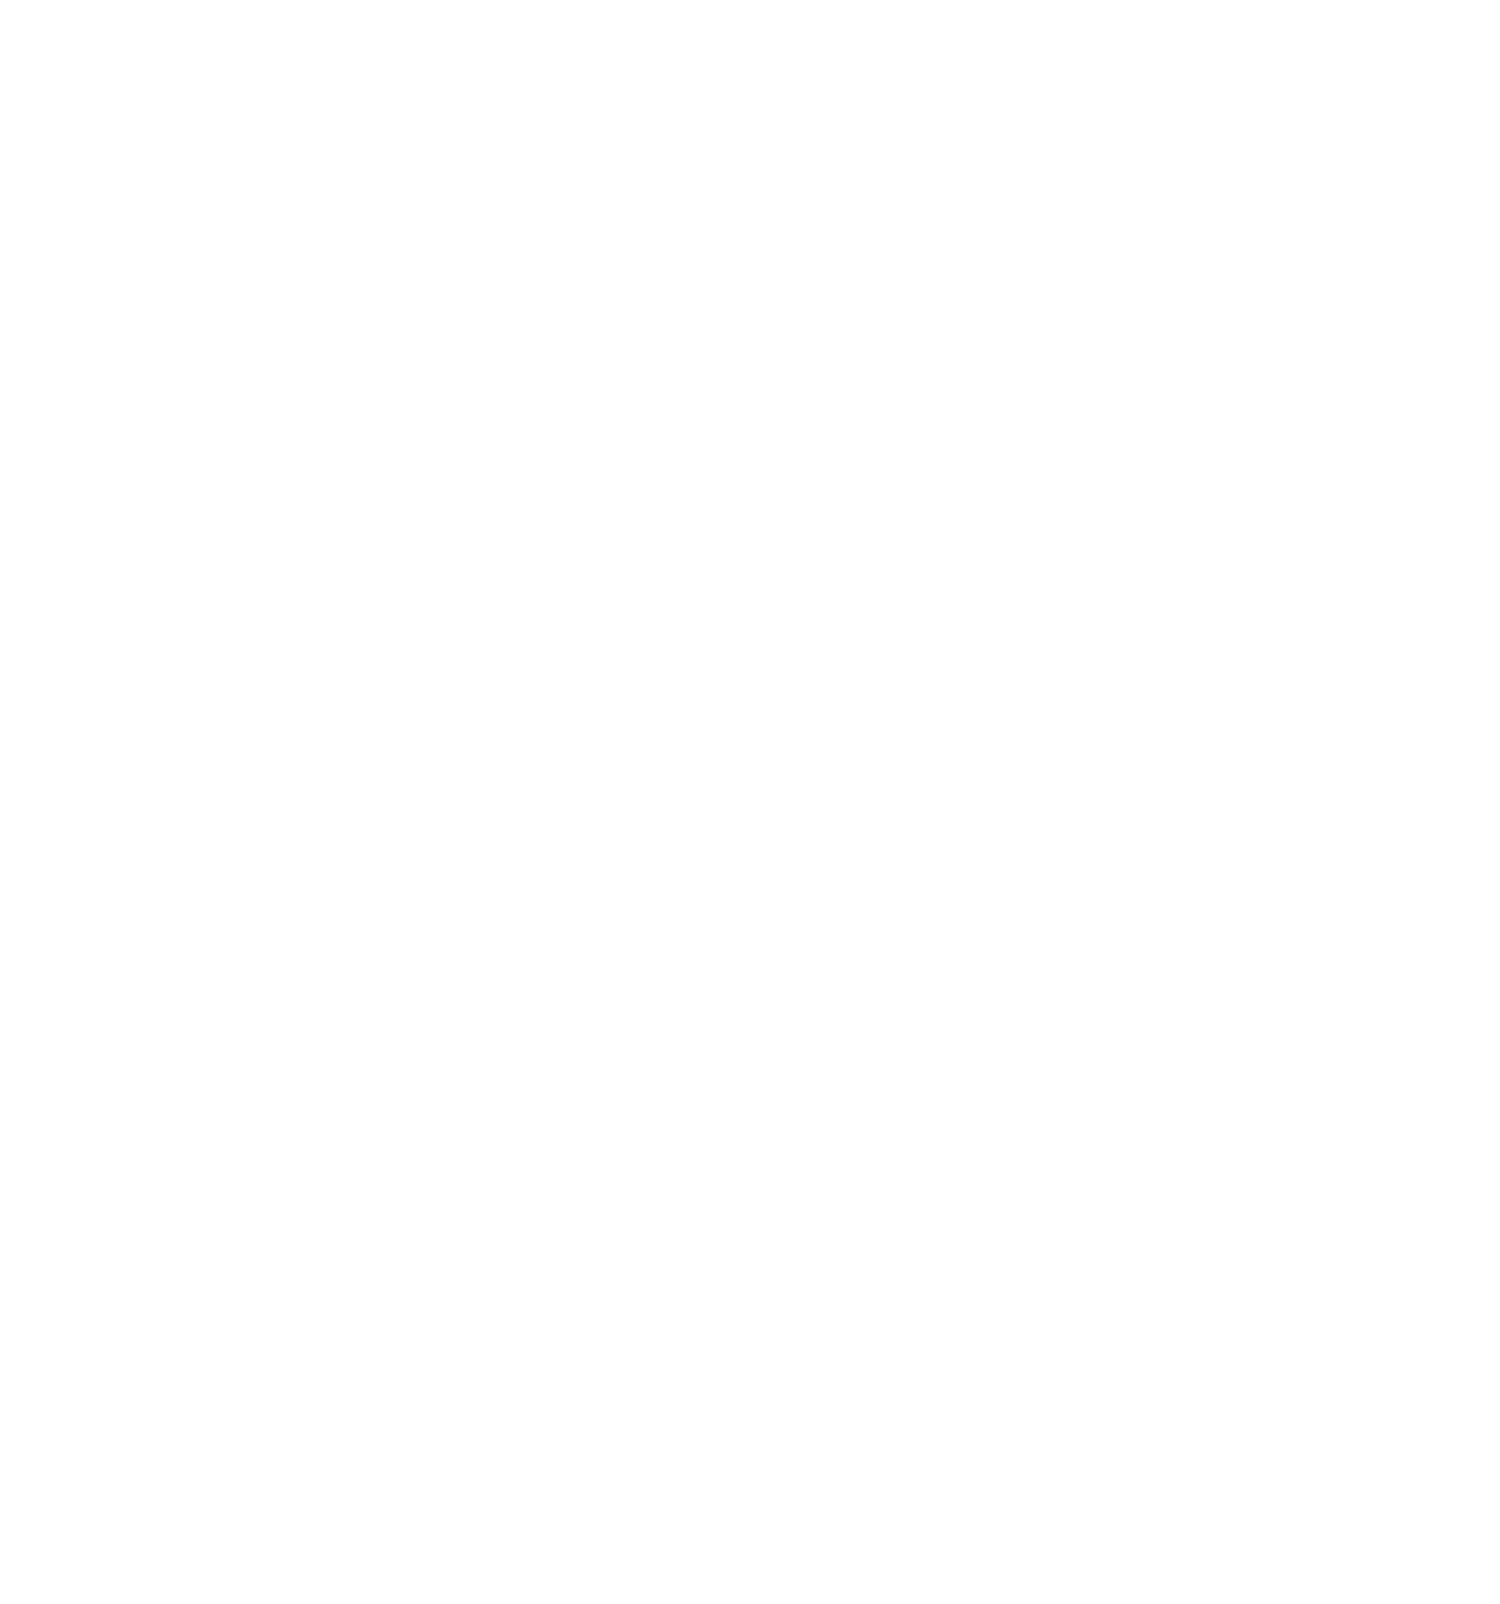 Flittermouse Films